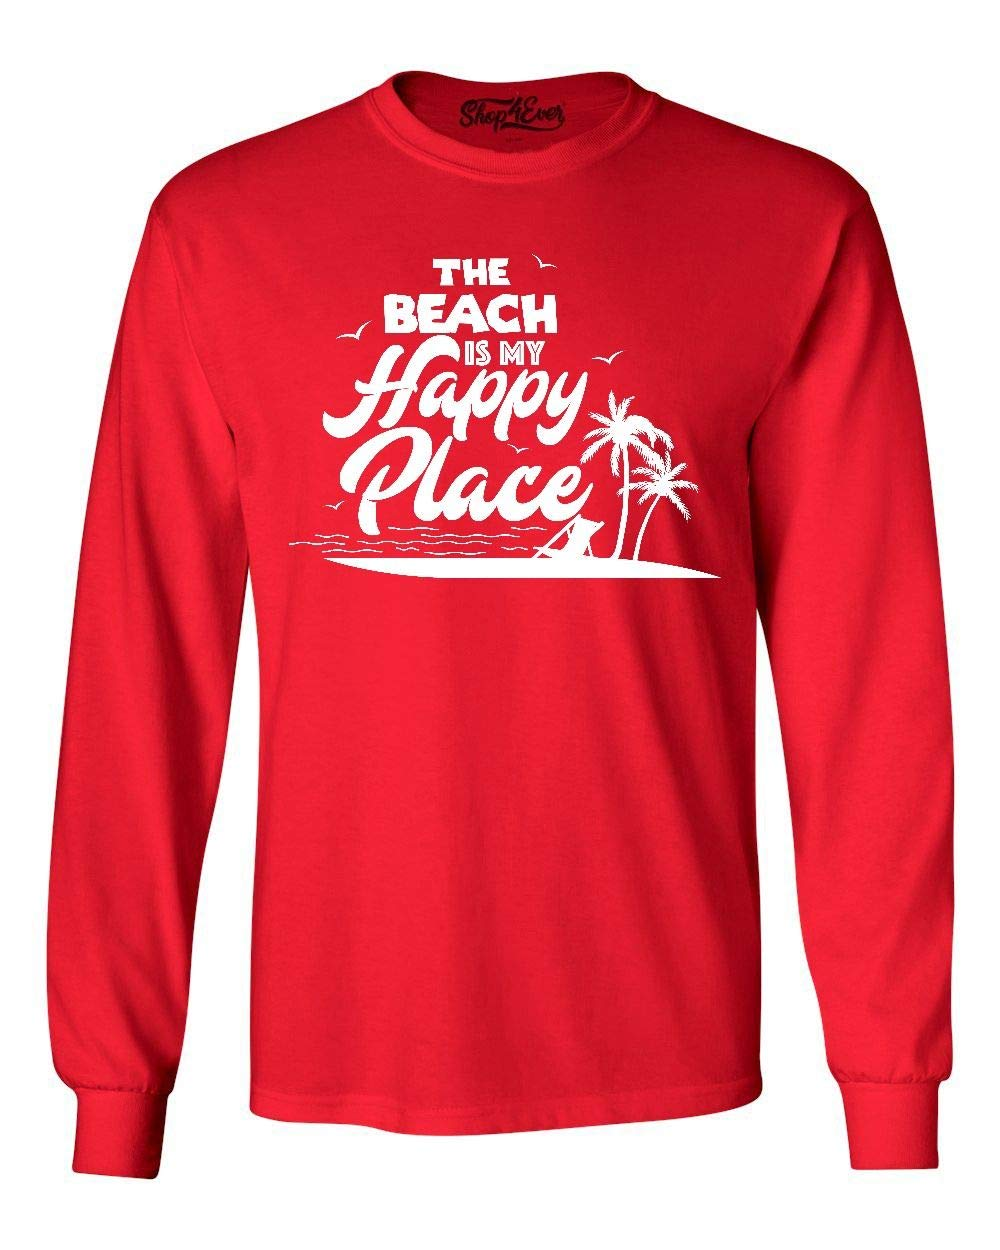 The Beach Is My Happy Place Shirt 7993